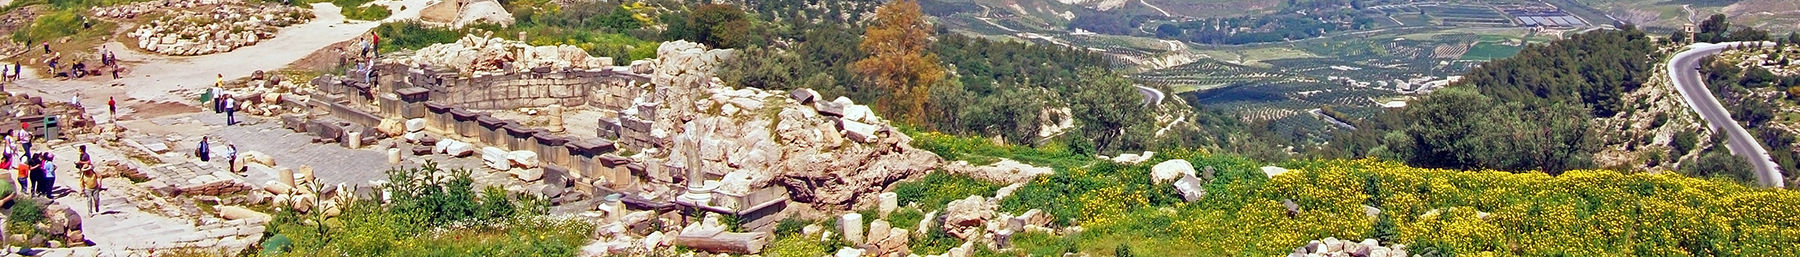 ruins of Roman city of Garada, at Umm Qais